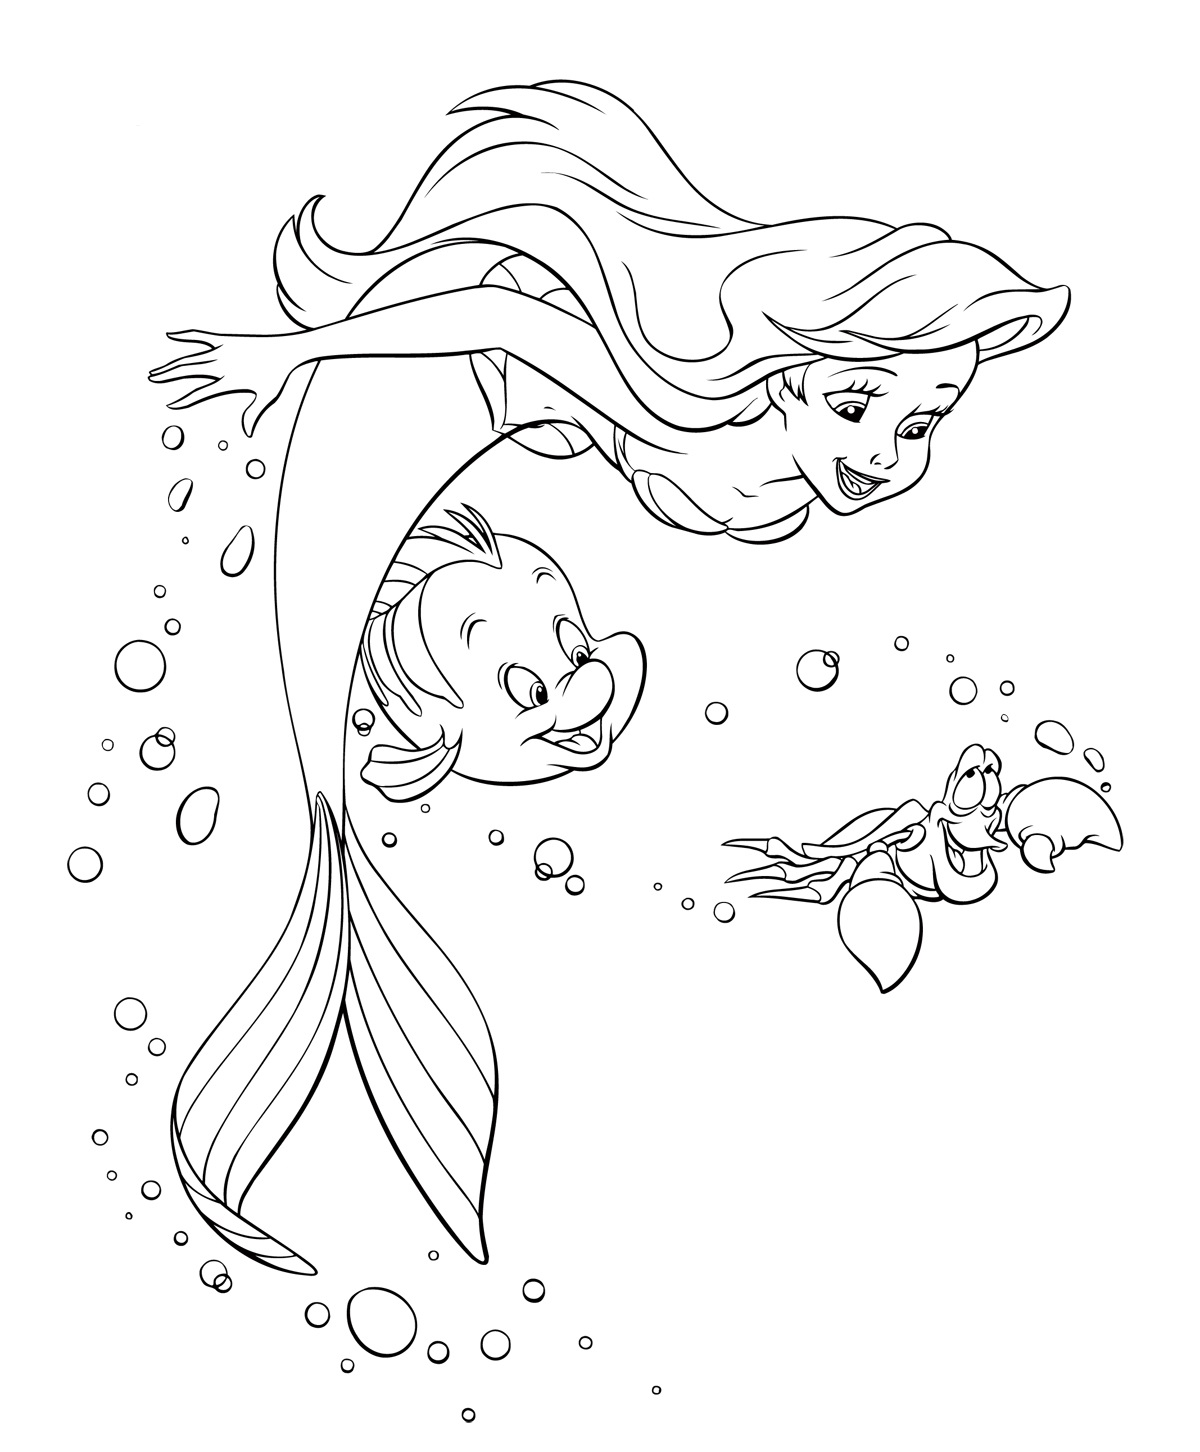 ariel little mermaid coloring sheets the little mermaid printable coloring pages 3 disney sheets coloring little mermaid ariel